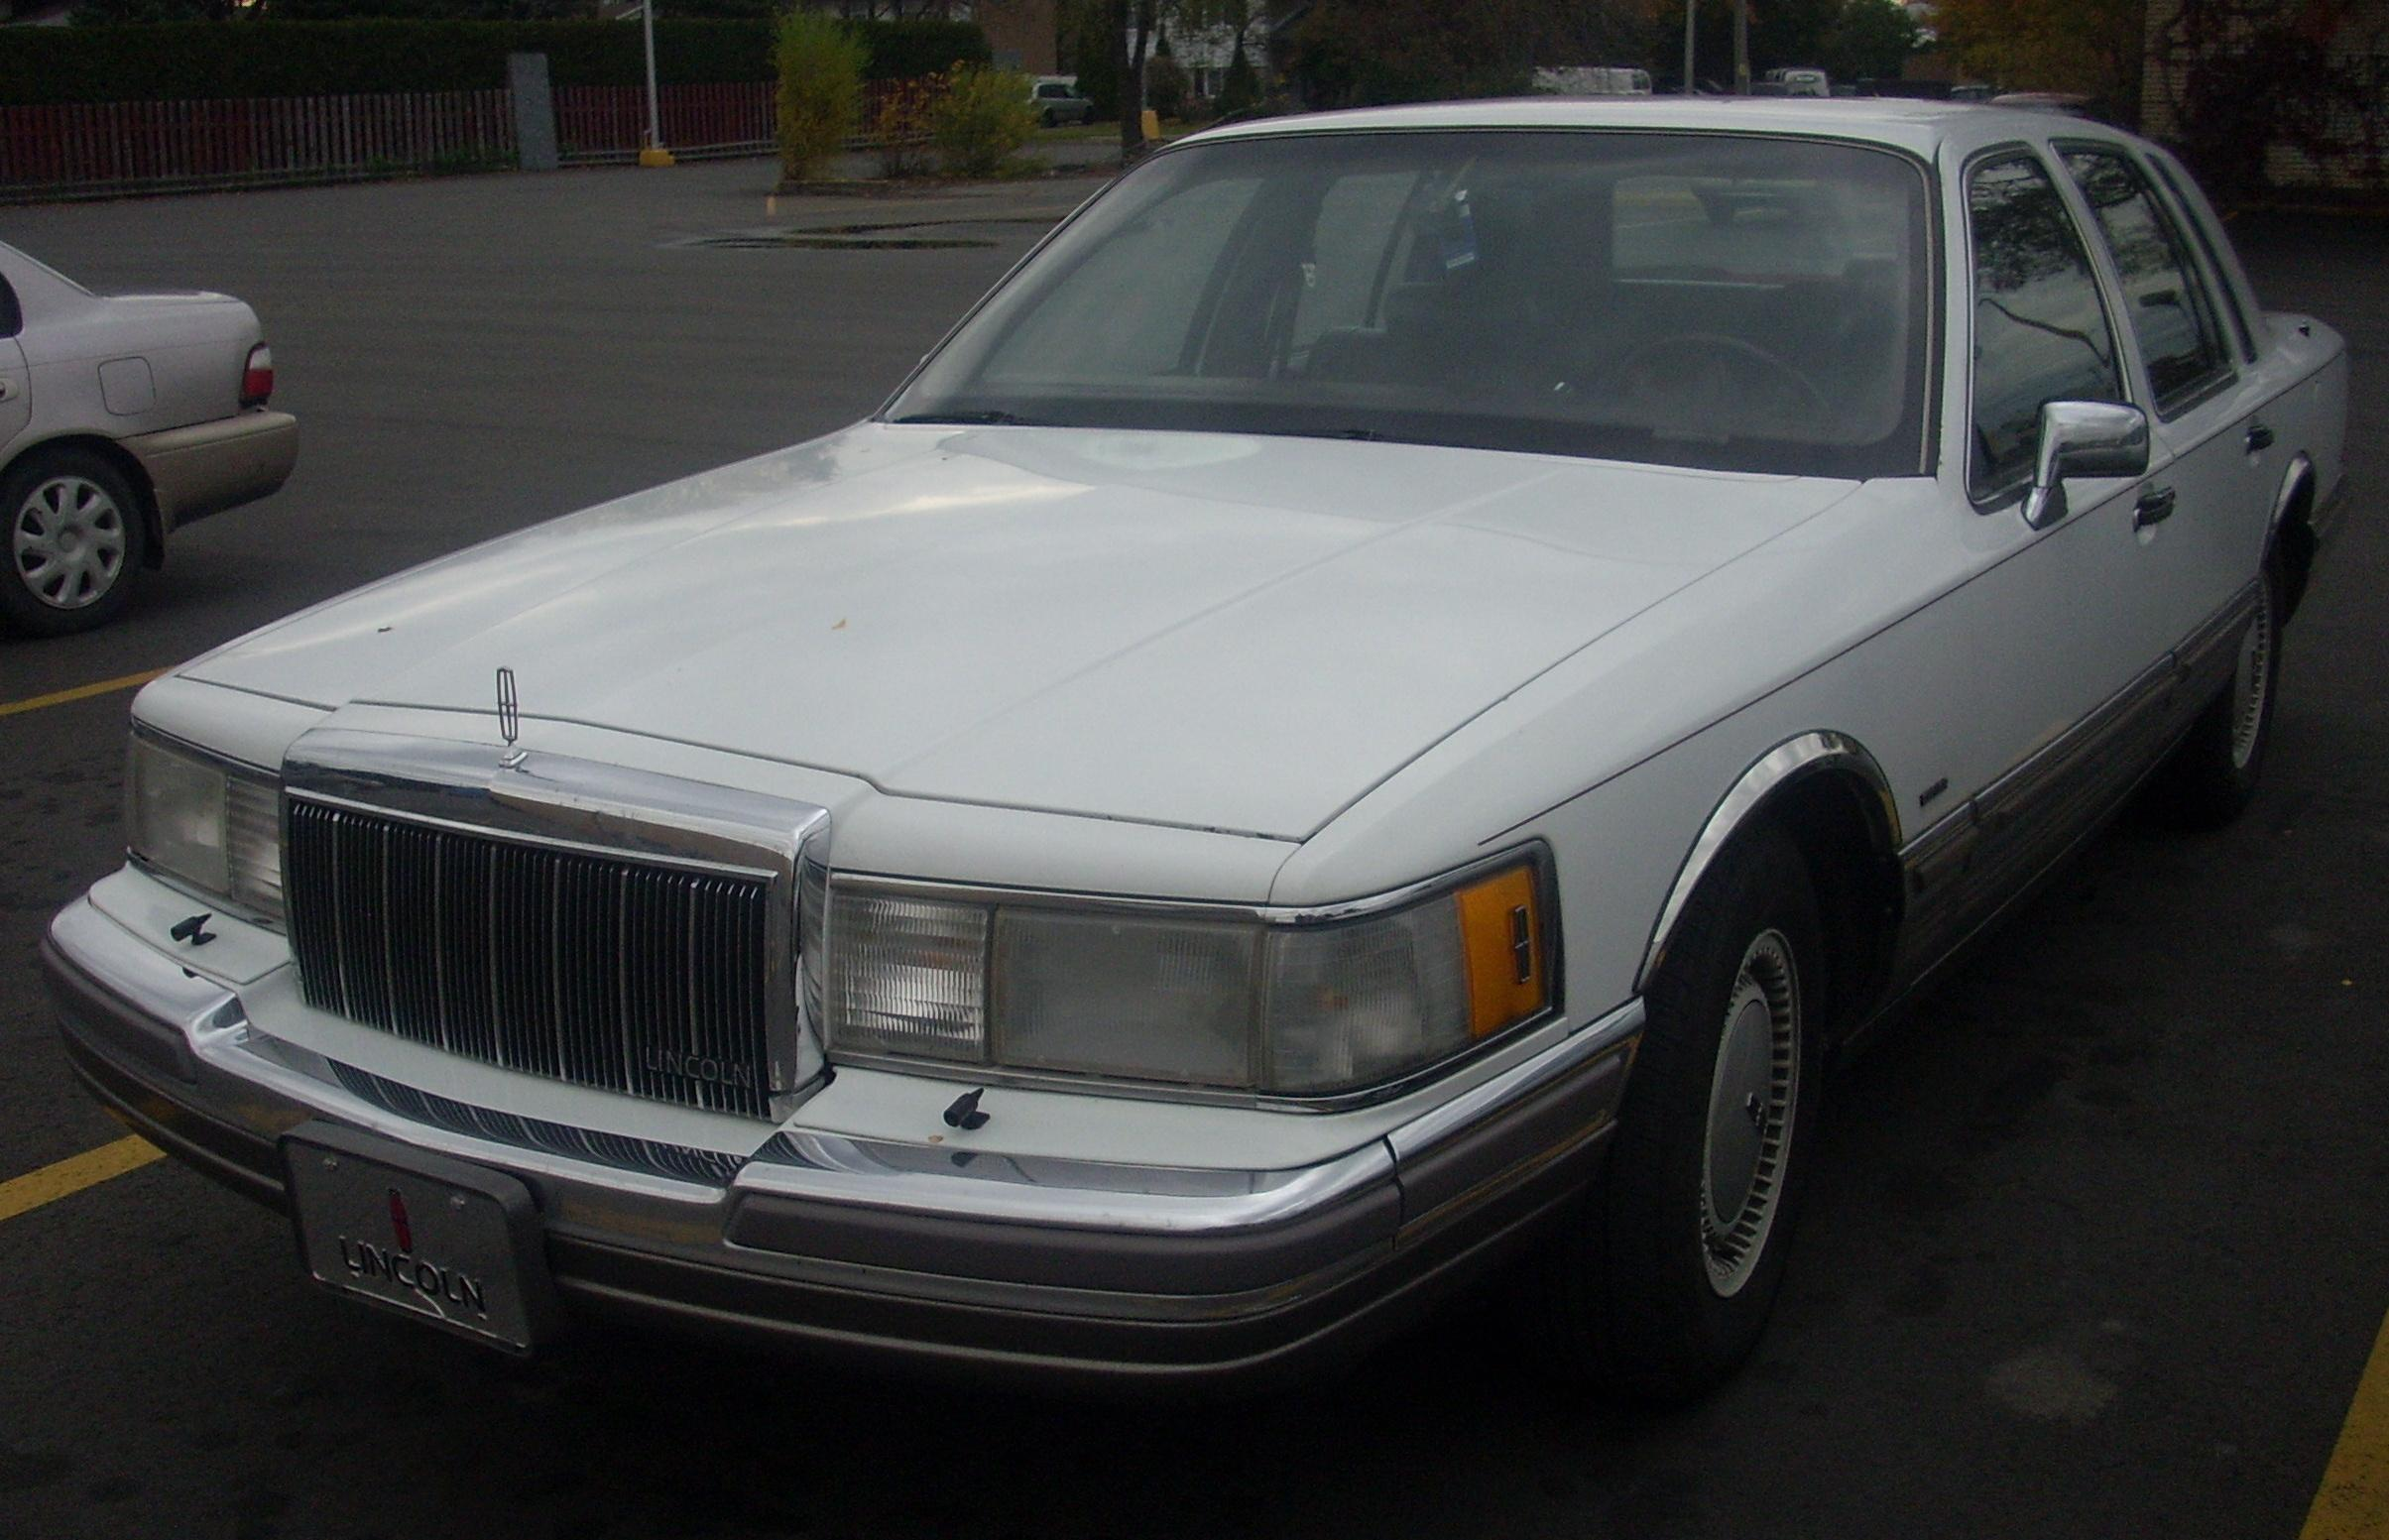 1990 Lincoln Town Car Information And Photos Zombiedrive